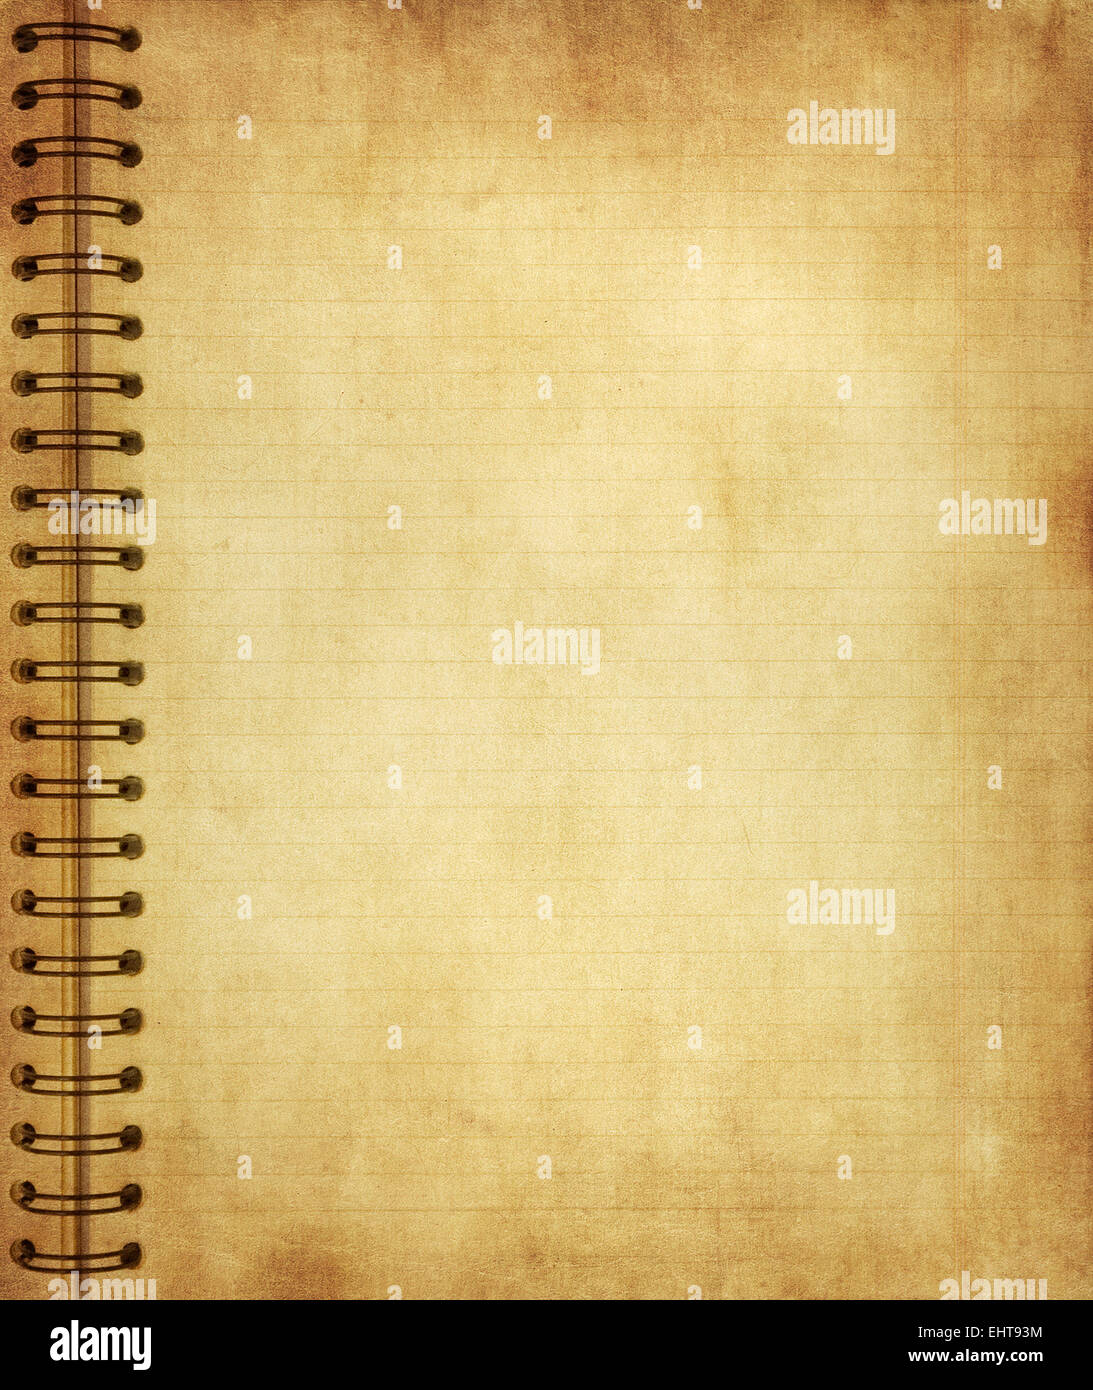 page from old grunge notebook stock photo 79824632 alamy